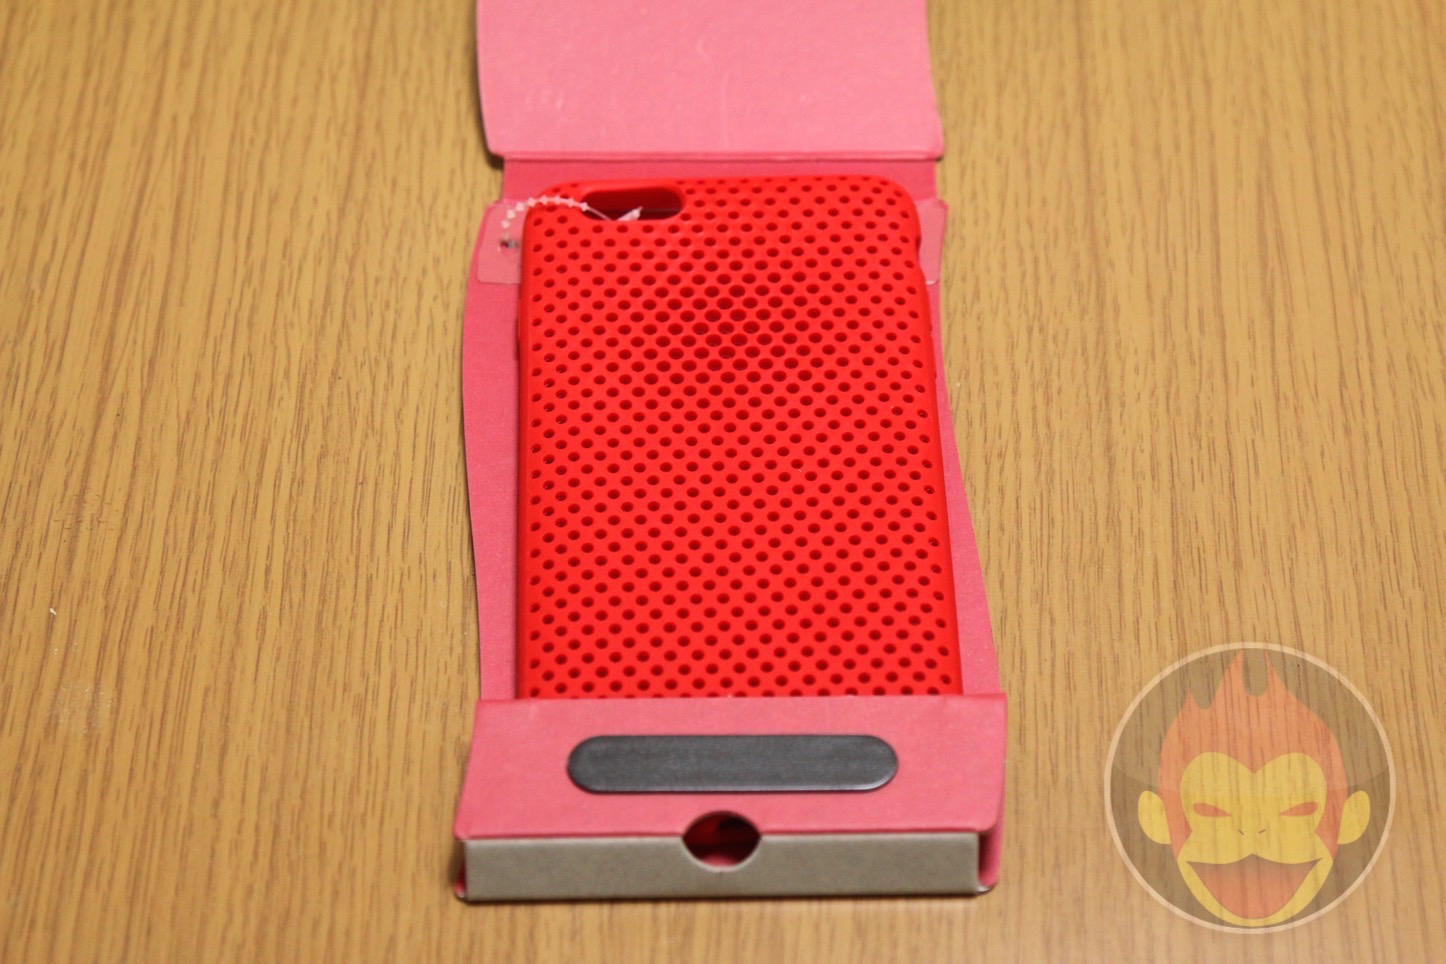 AndMesh Mesh Case for iPhone 6 Plus